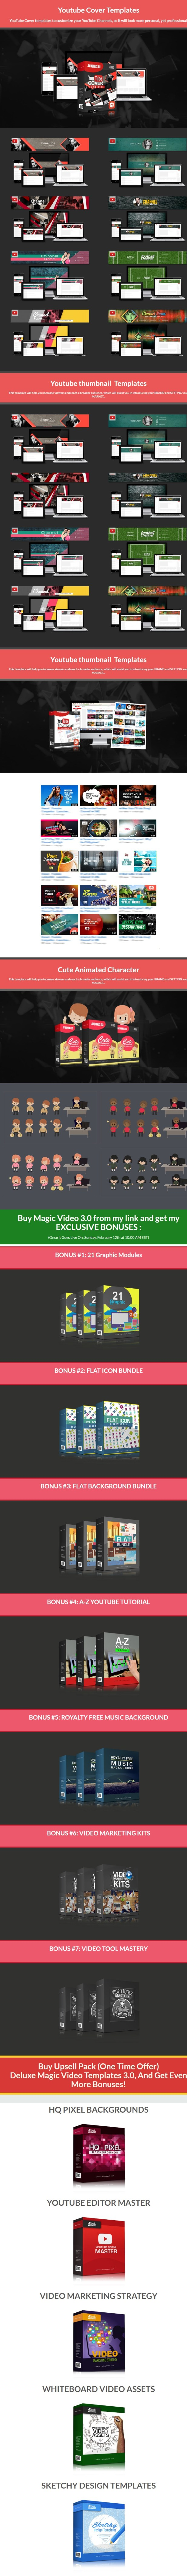 Magic Video Templates Pro 3.0 Bonuses